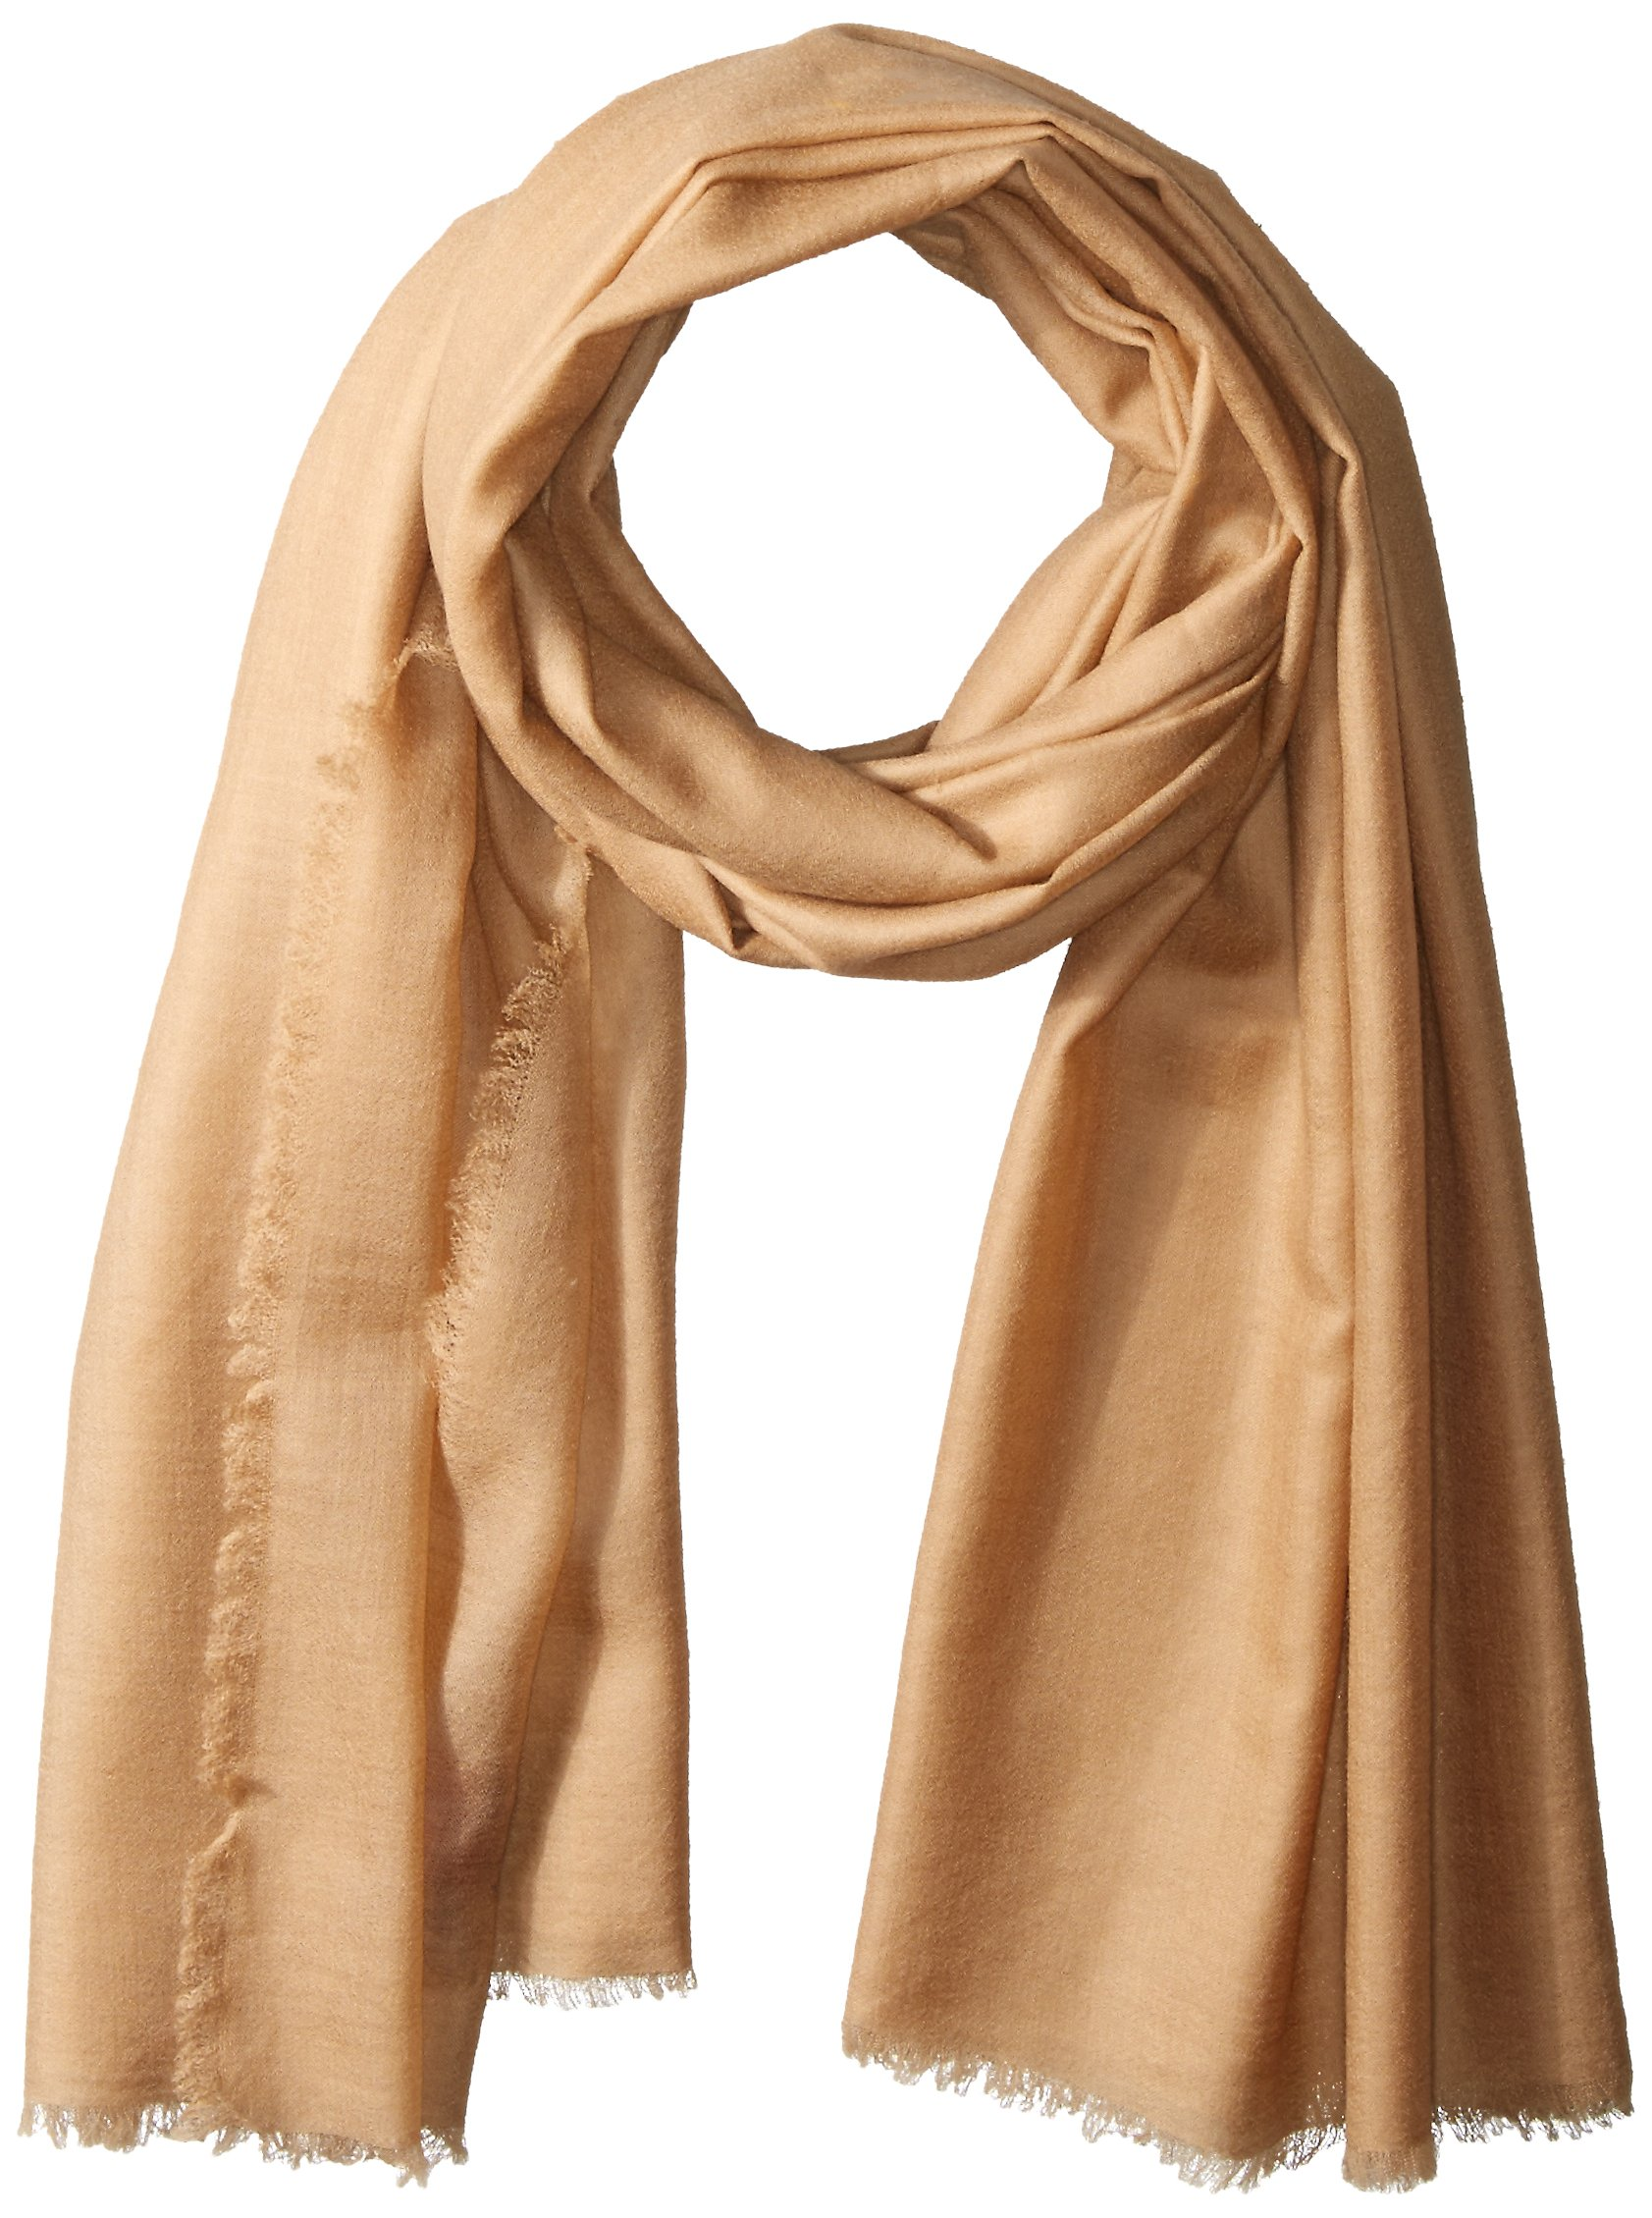 Phenix Cashmere Lightweight Wool Wrap, Camel, One Size